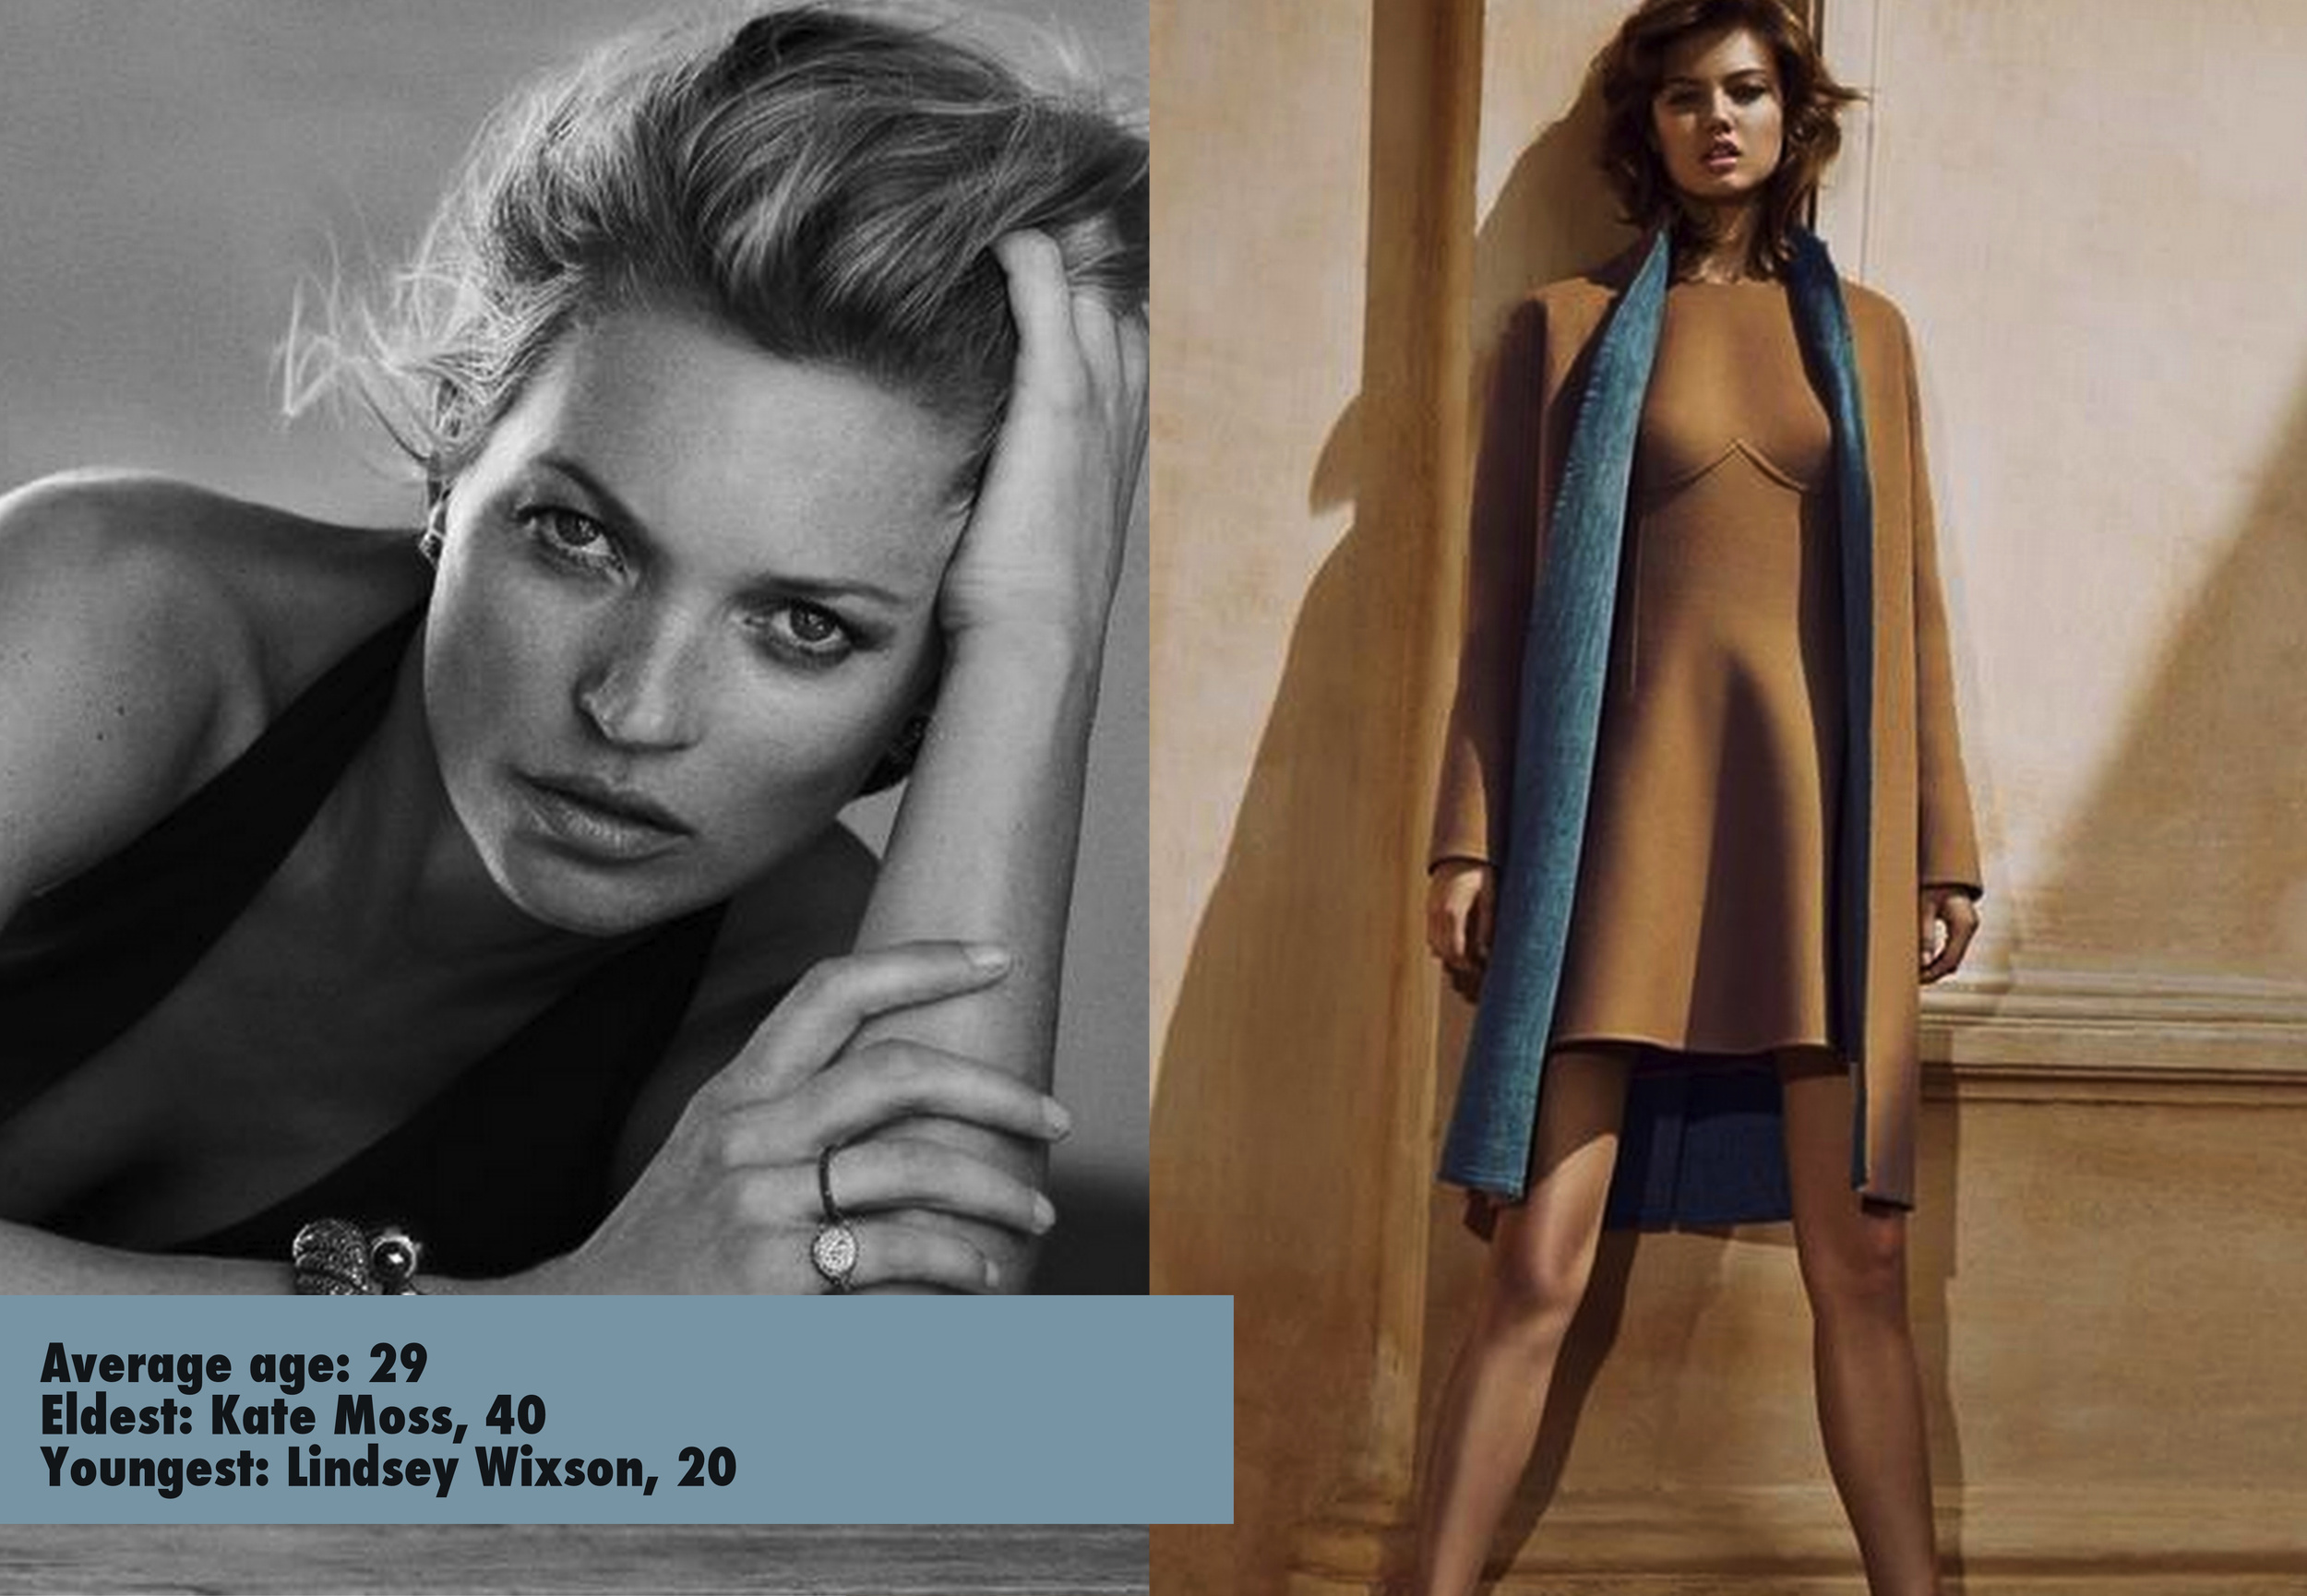 Left to right: Kate Moss for David Yurman Fall 2014 by Peter Lindbergh; Lindsey Wixson for Ermanno Scervino Fall 2014 byFrancesco Carrozzini